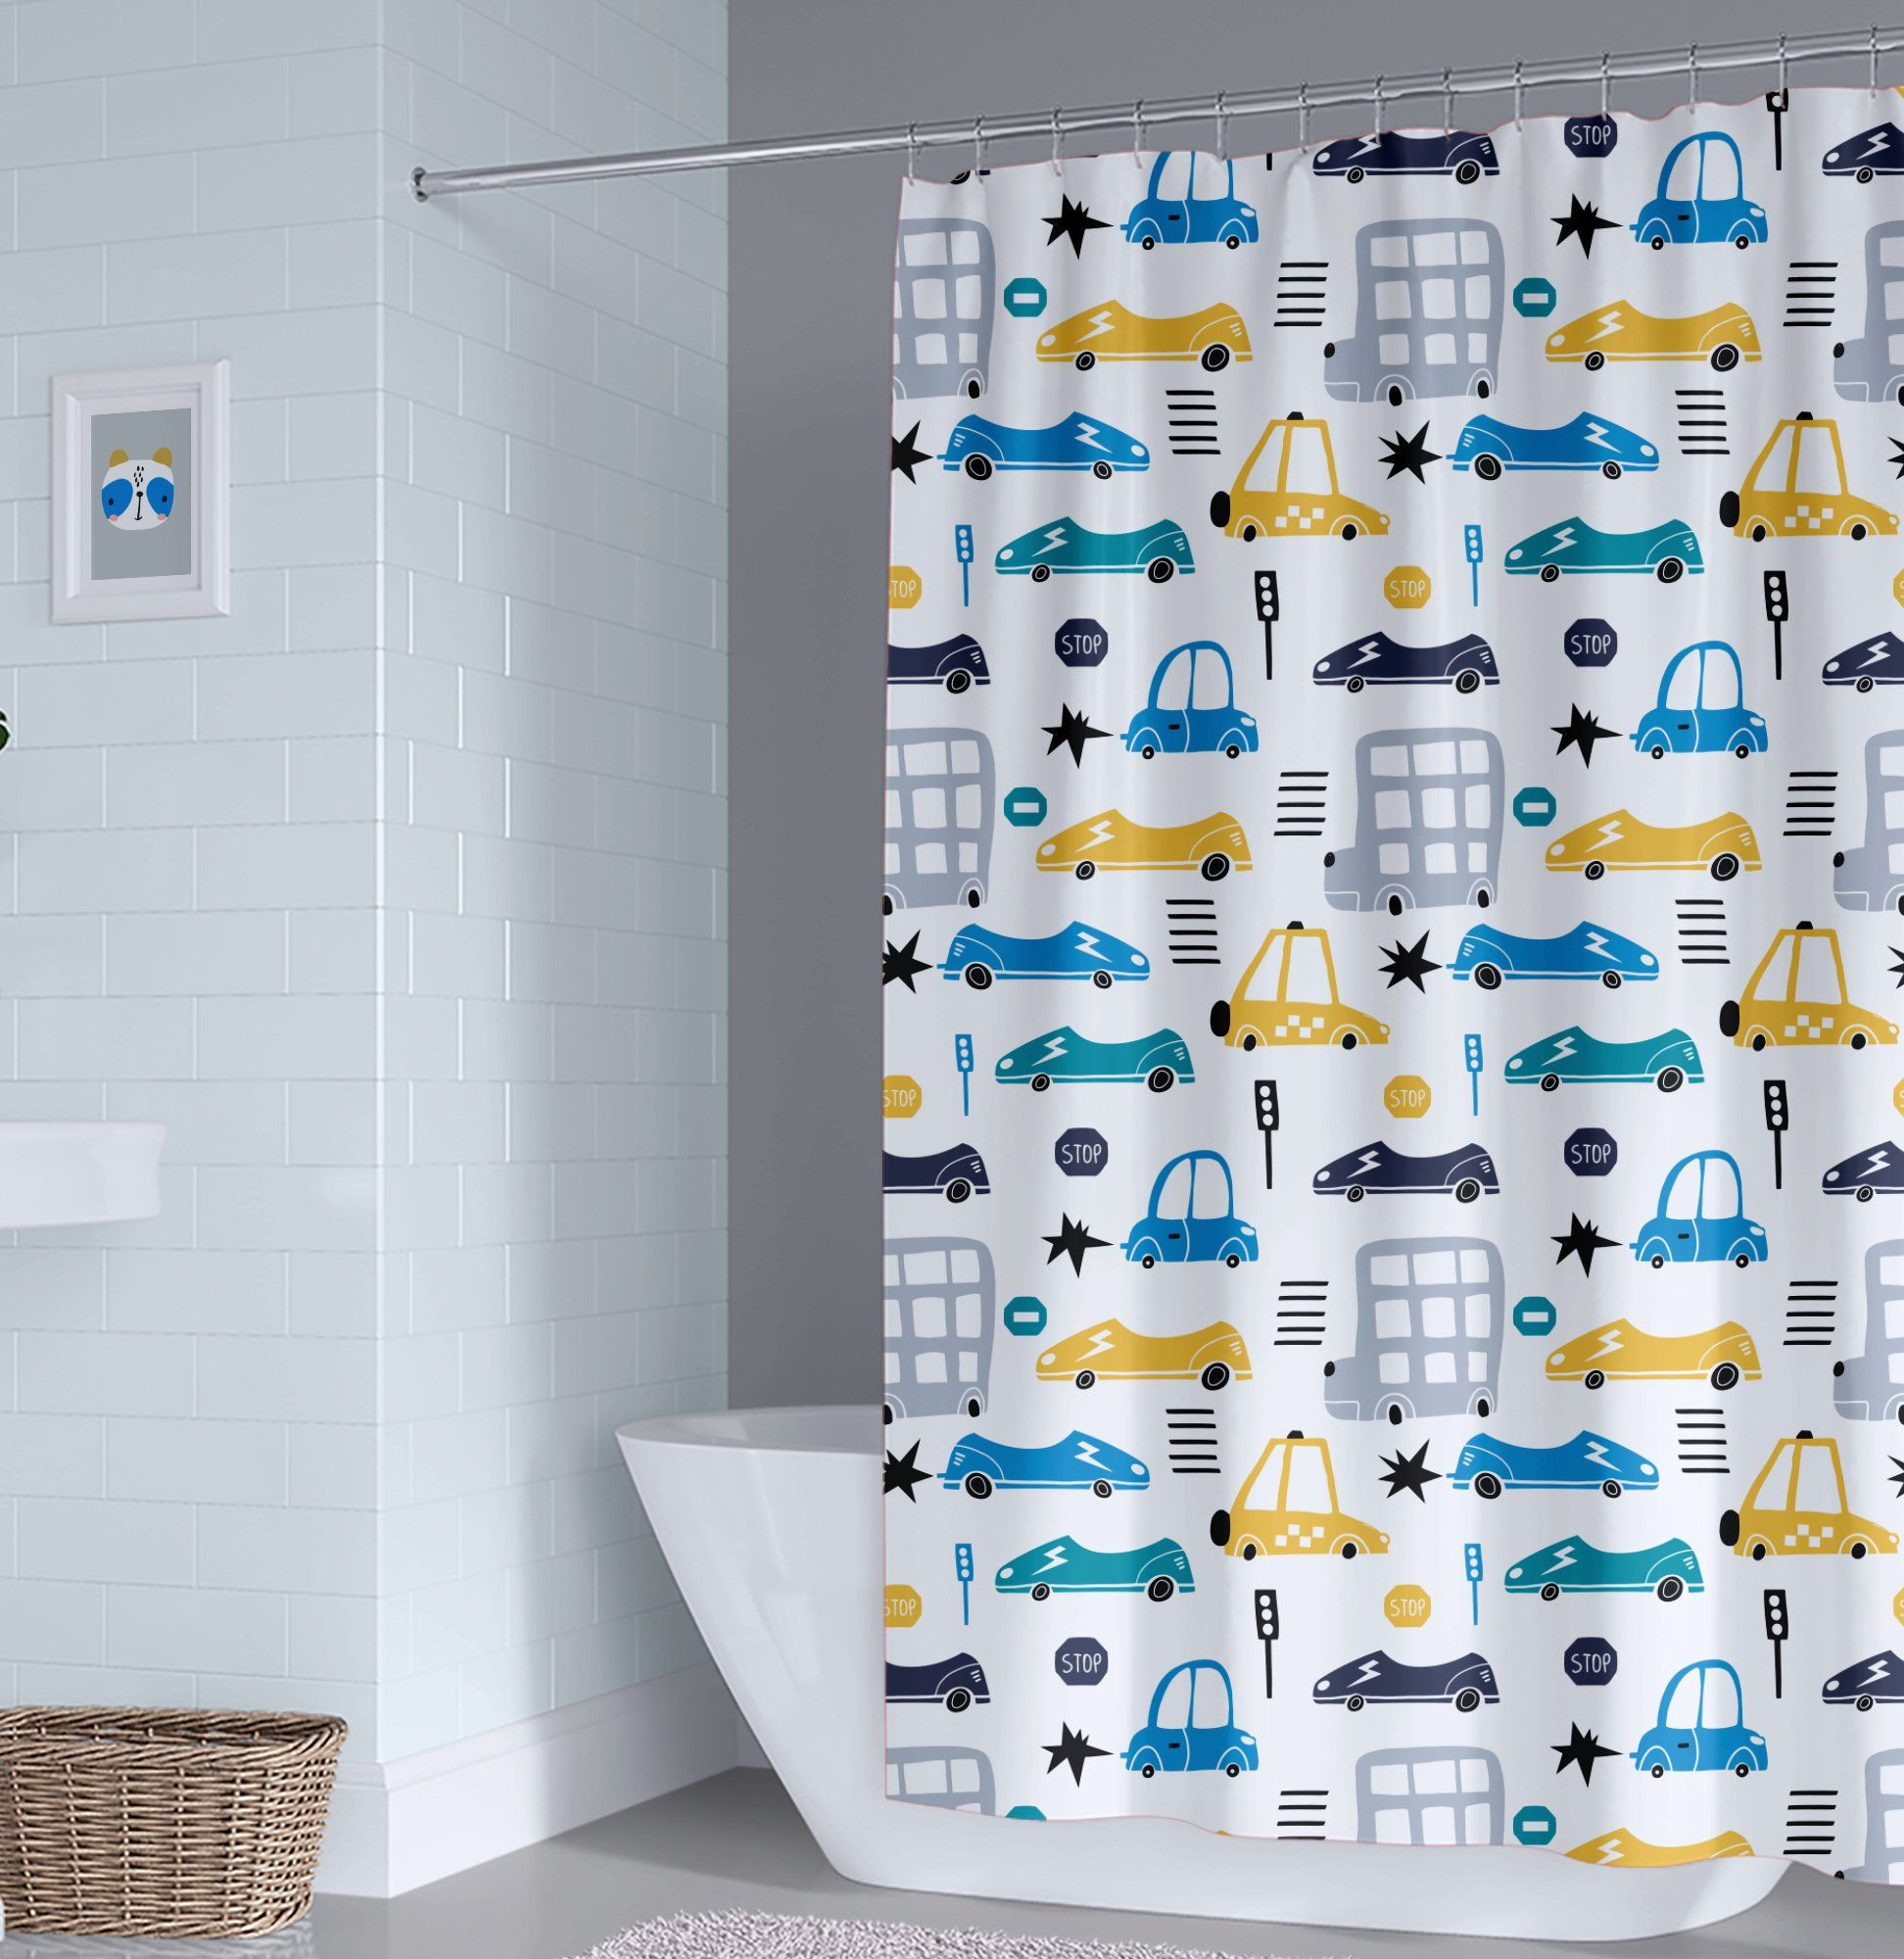 Transportation Kids Shower Curtain Boy Shower Curtain Cars Shower Curtain Unisex Bathroom Decor Toddler Boy Cars